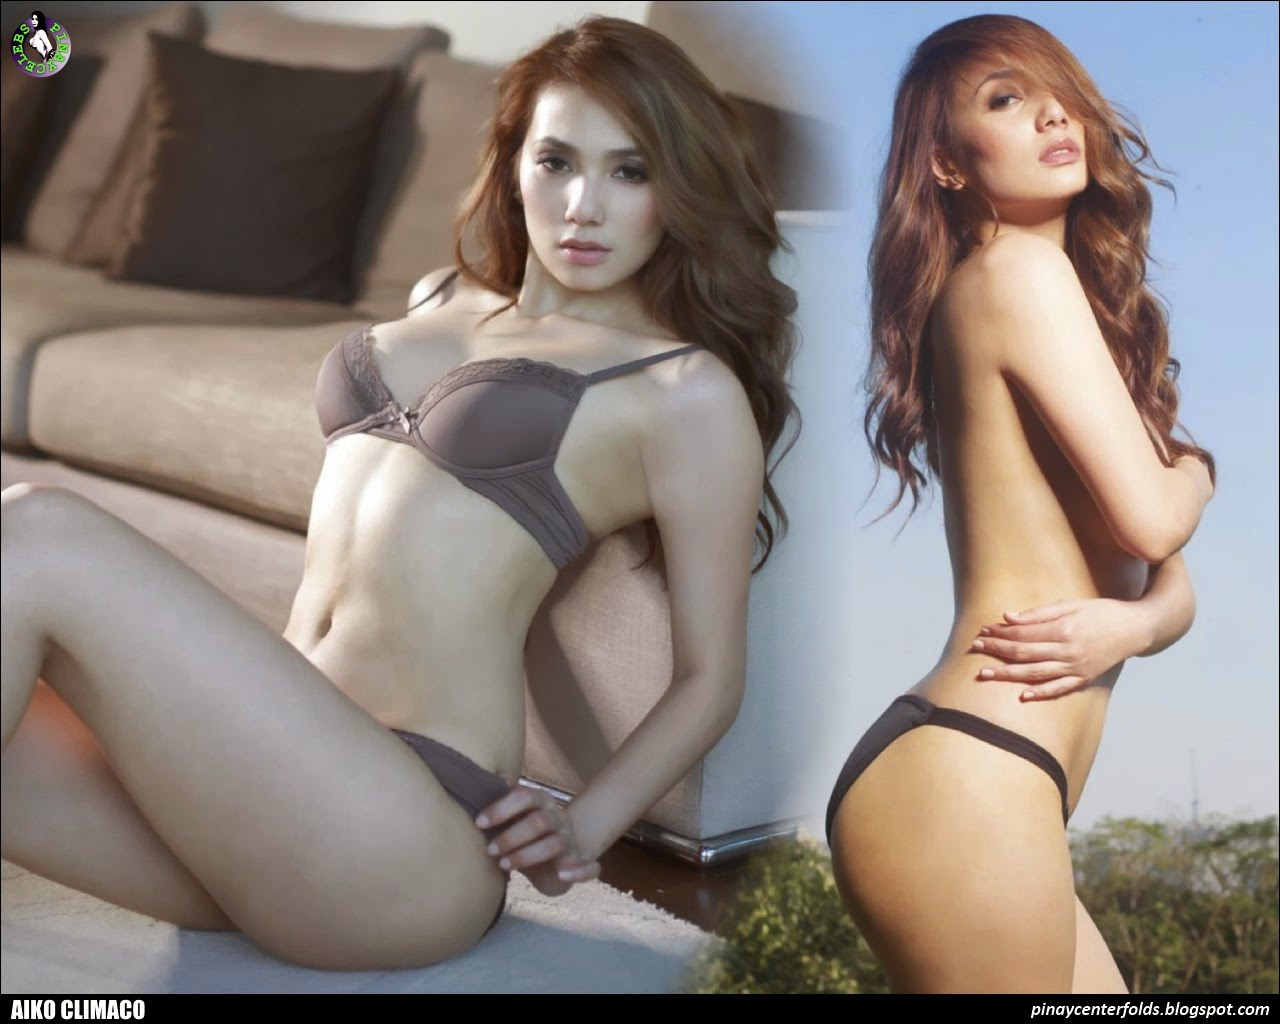 Aiko Climaco In FHM Feb 2015 4